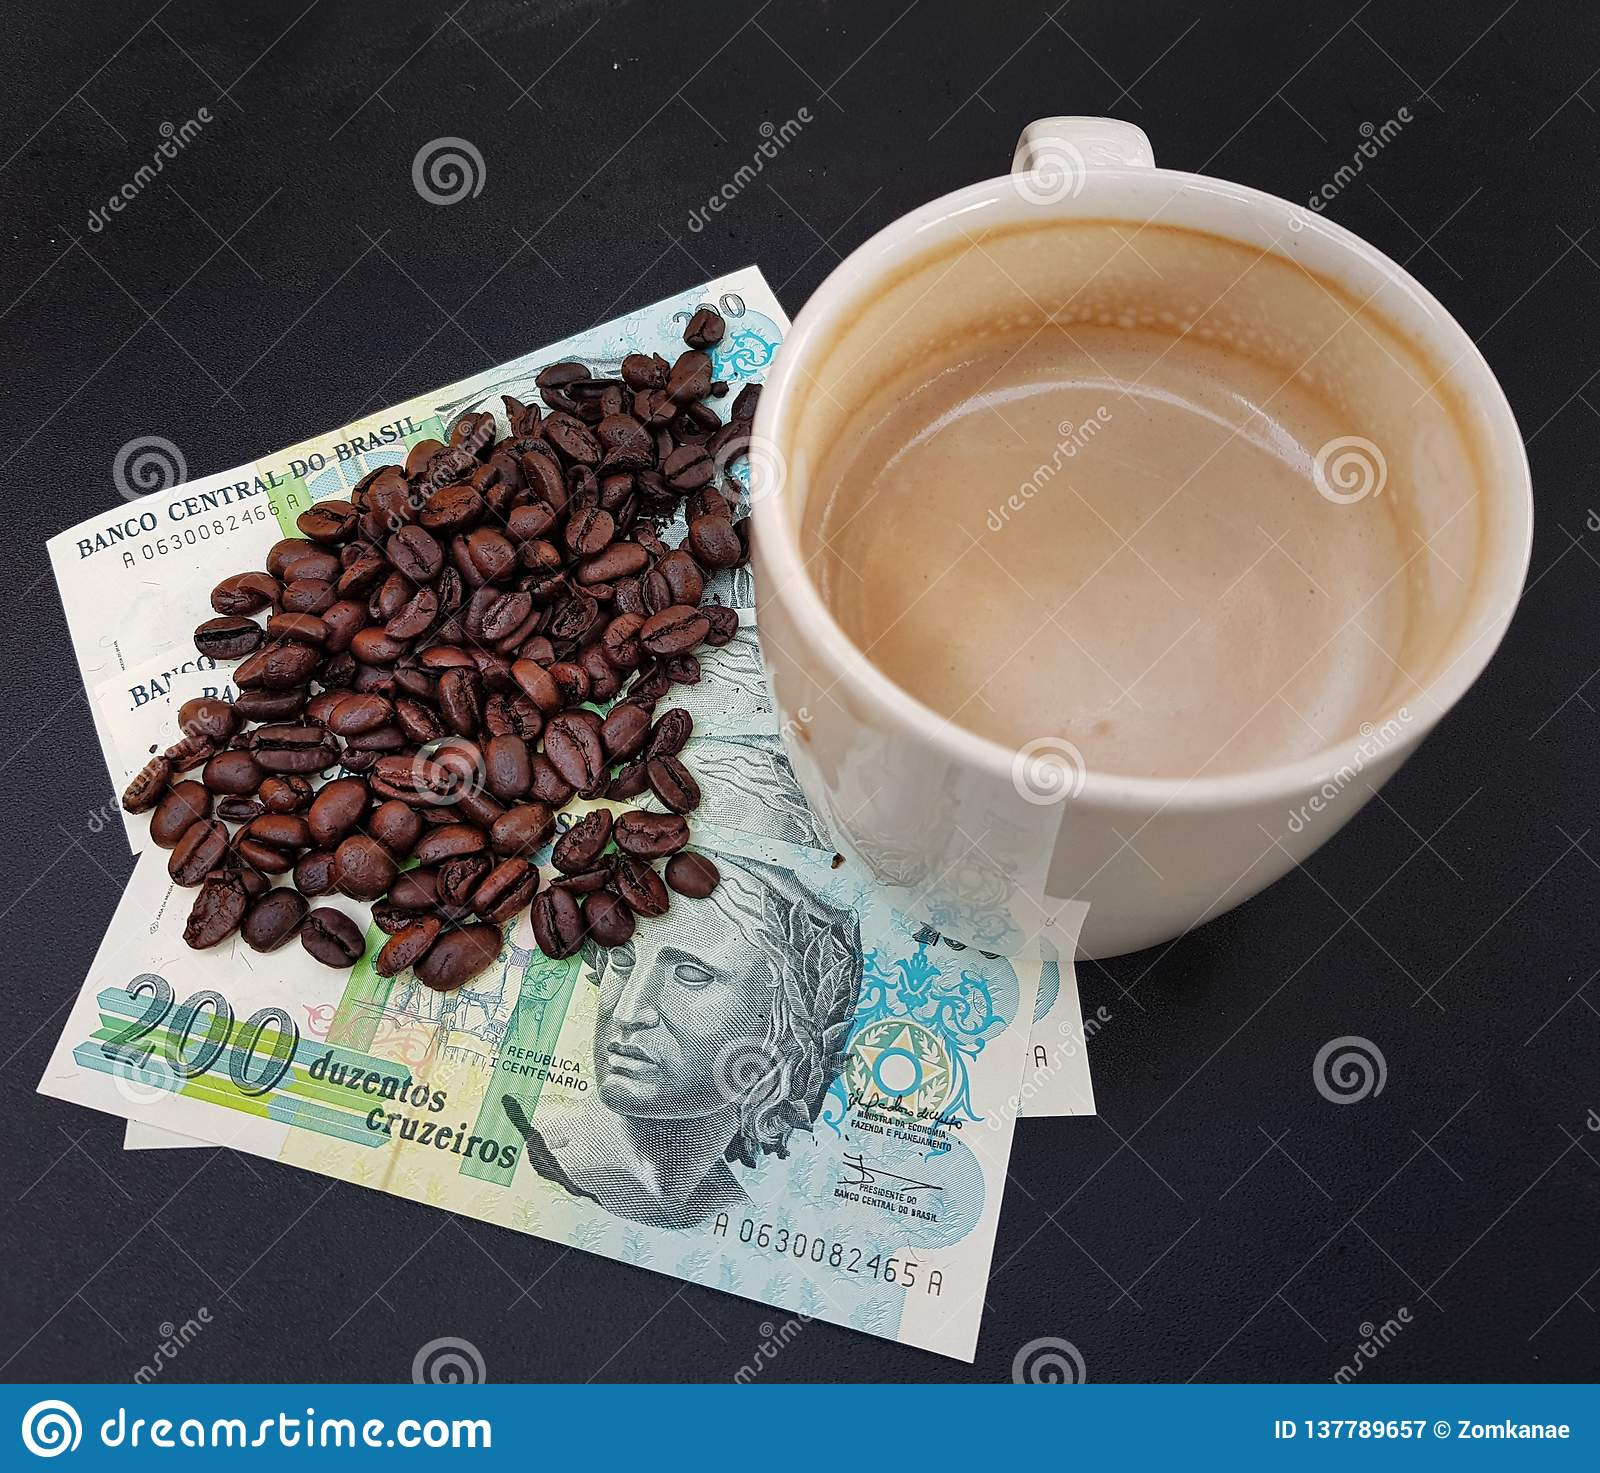 Brazil roasted coffee beans placed on banknotes